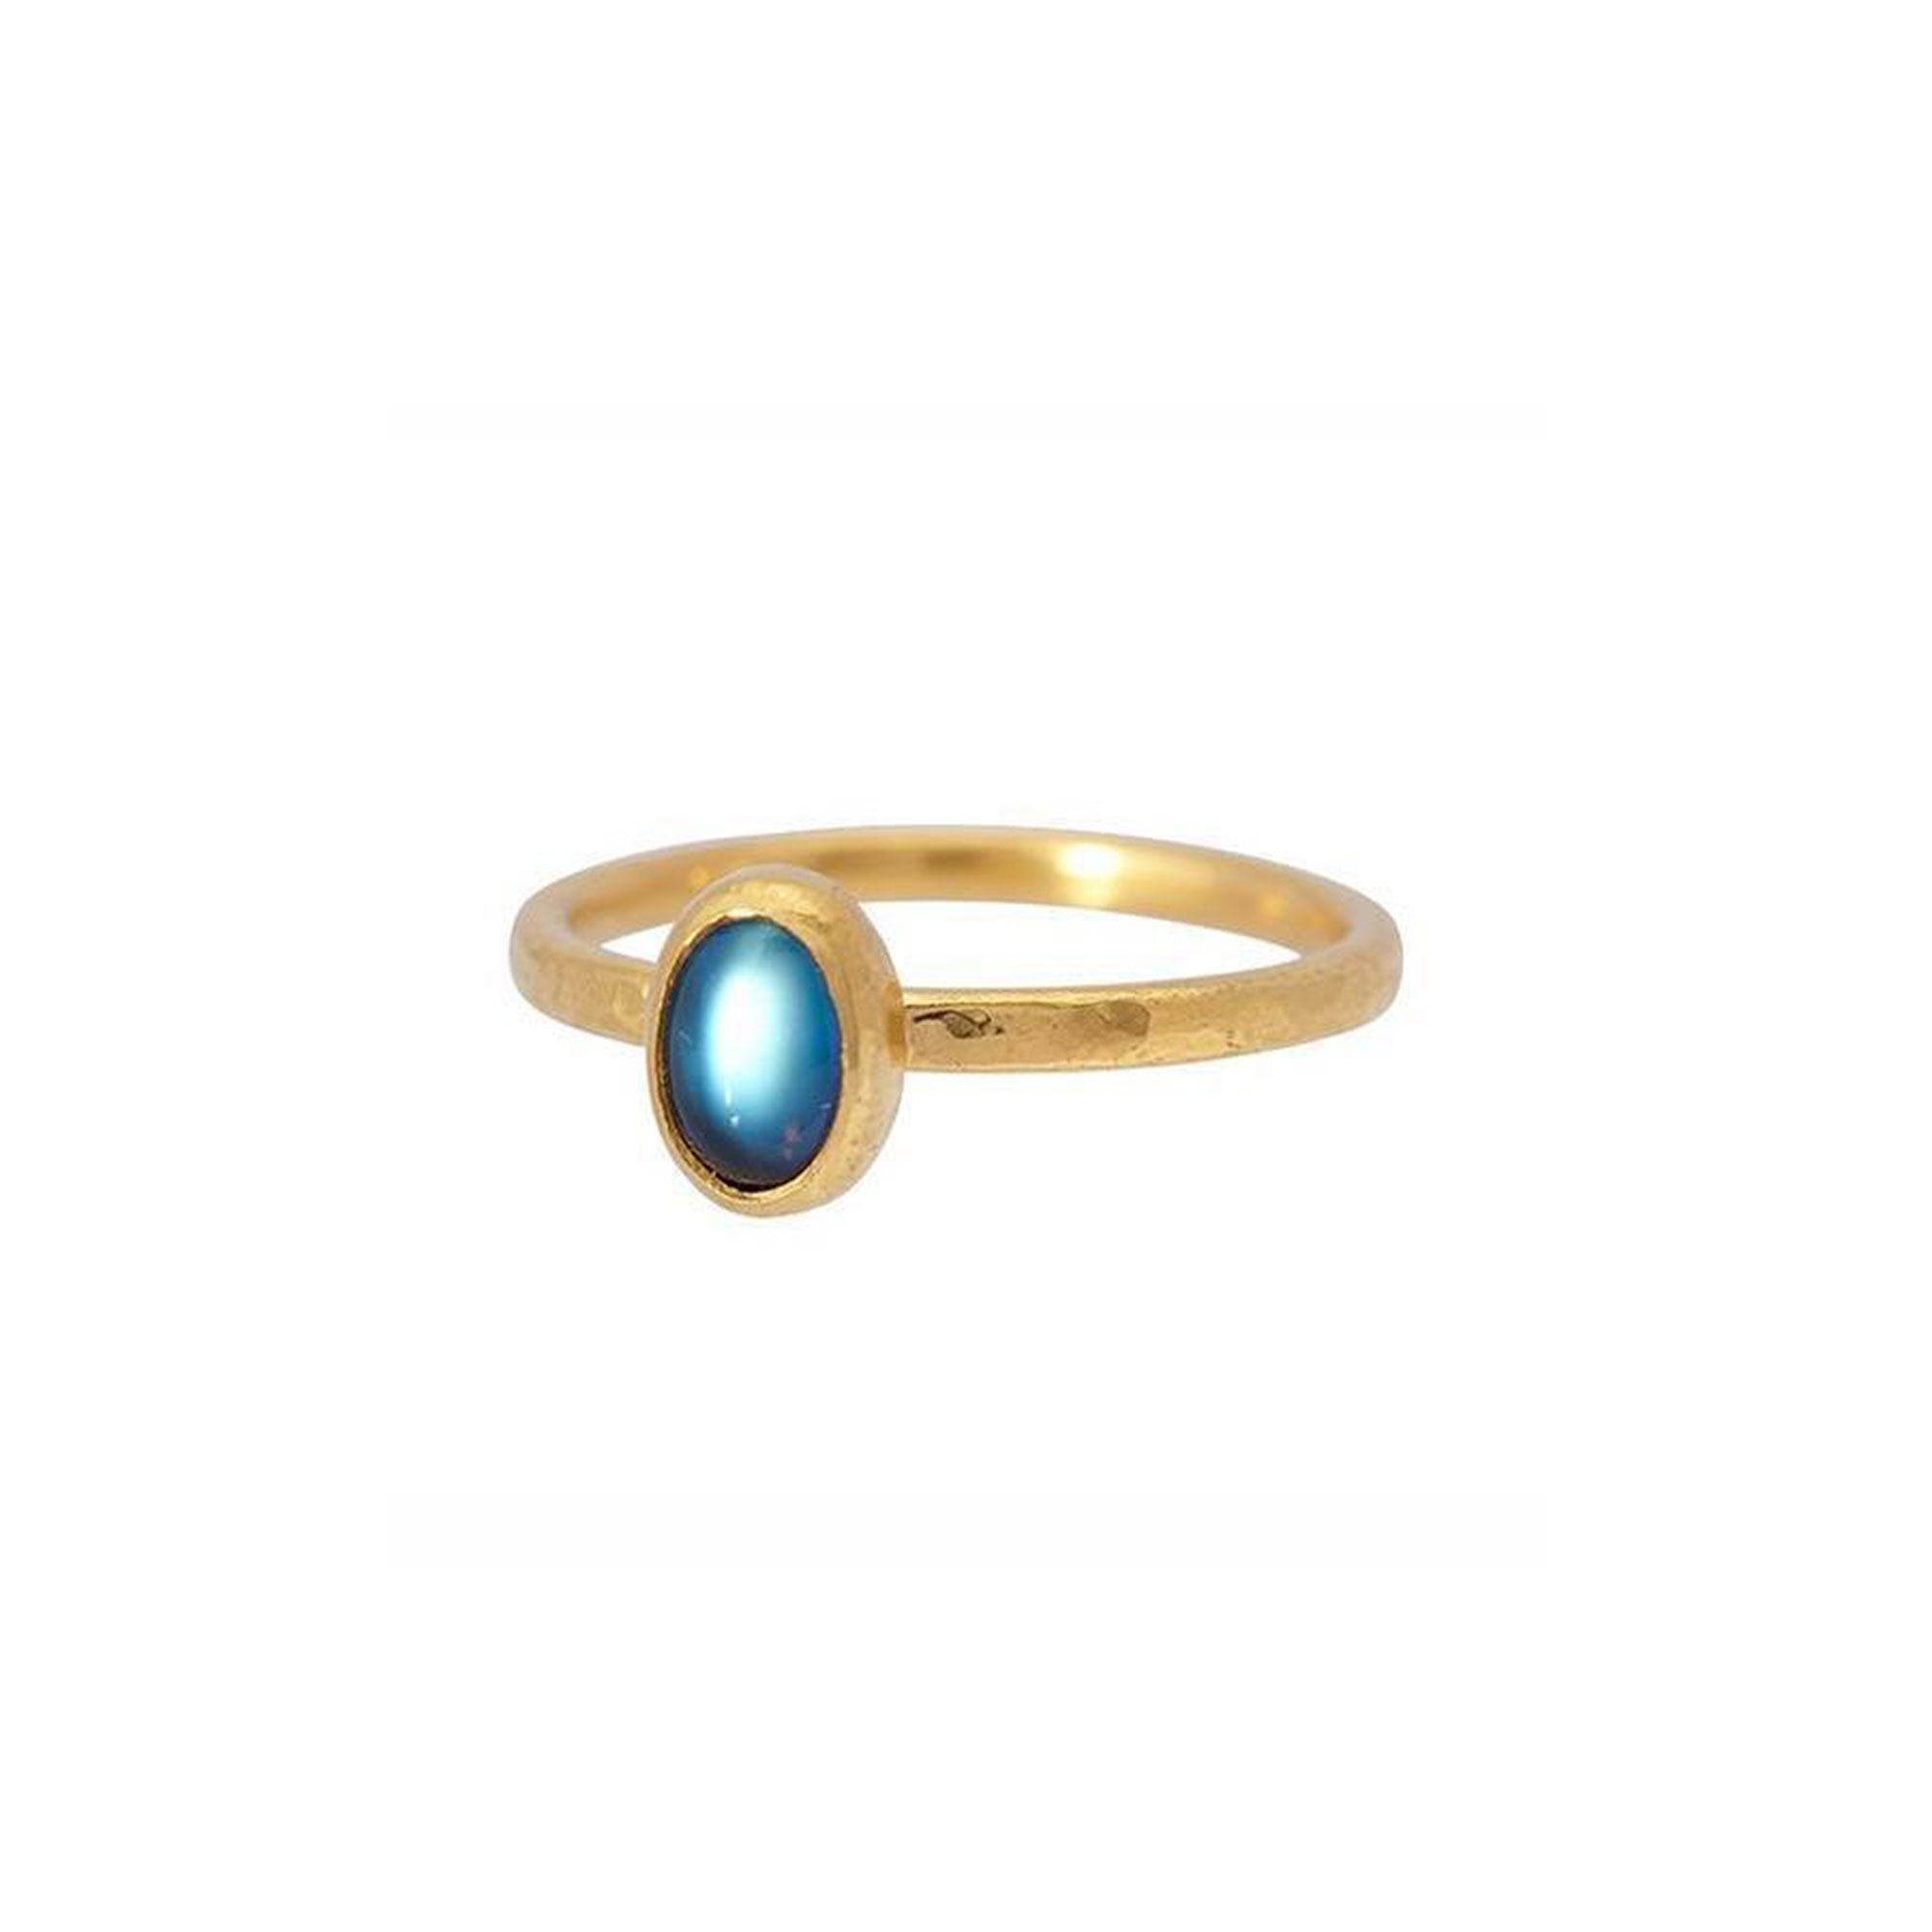 Gurhan 24K Yellow Gold .45cts Blue Moonstone Gold Ring with Stones R-U24429-MNS